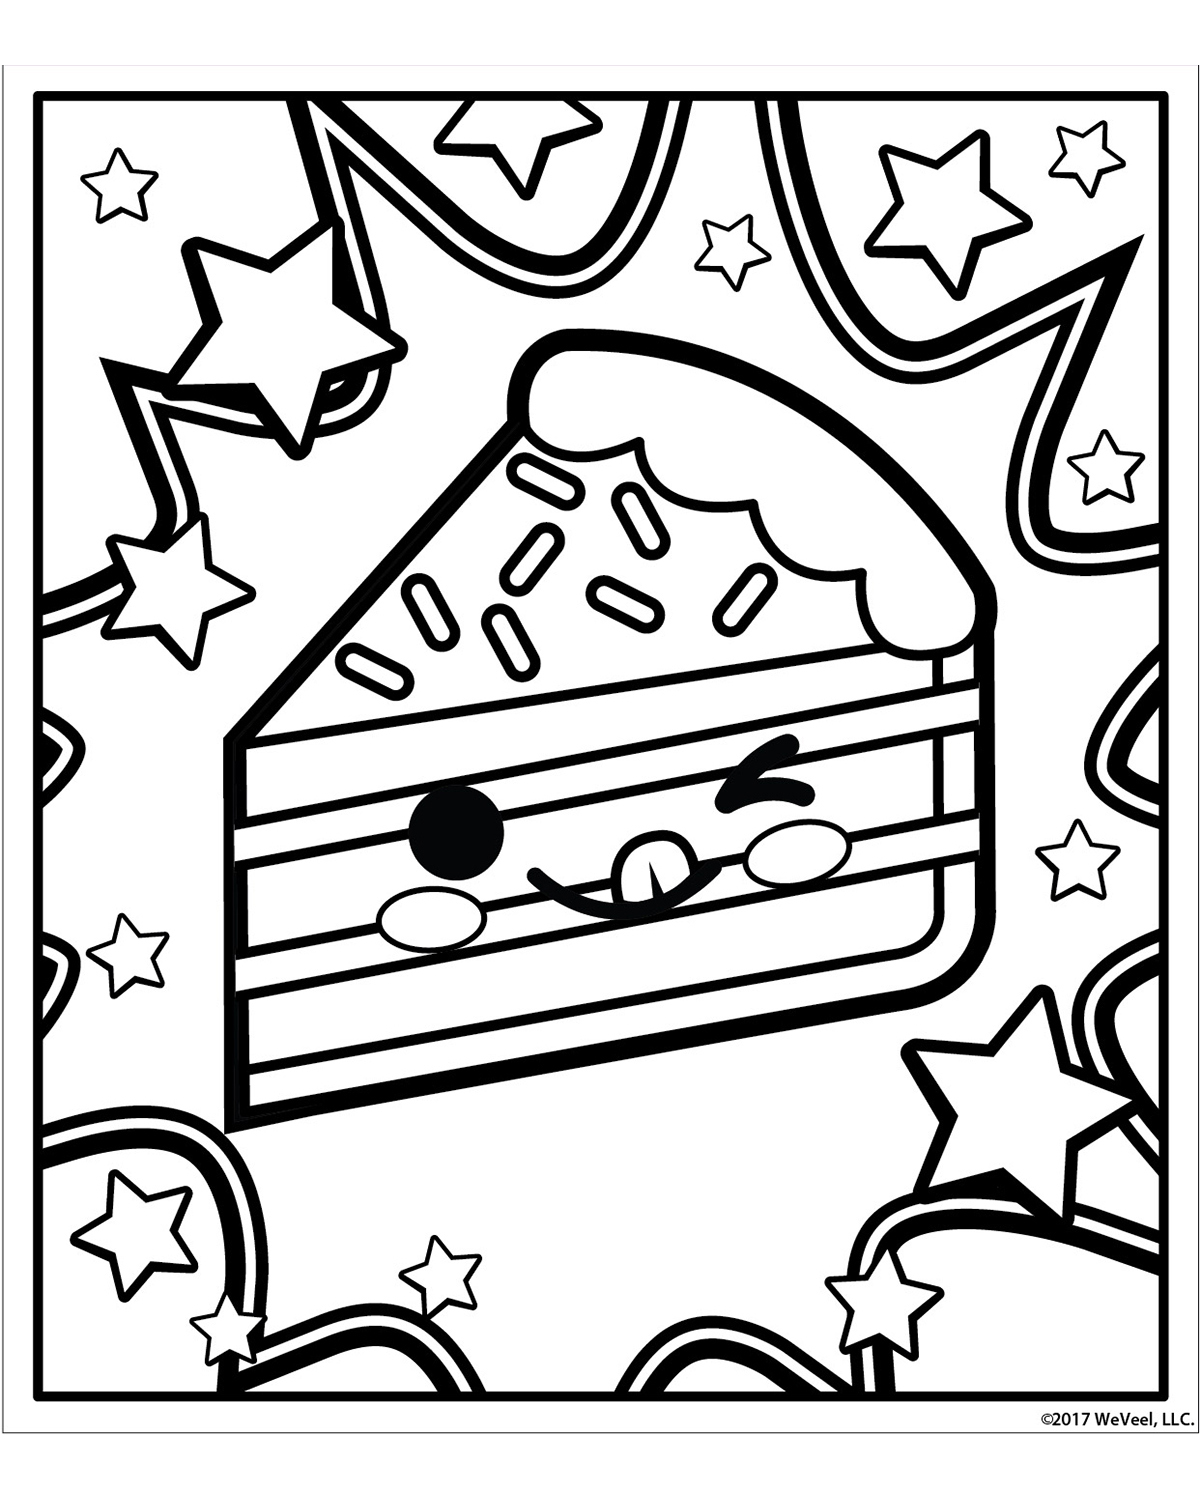 sugar rush coloring pages - photo#40